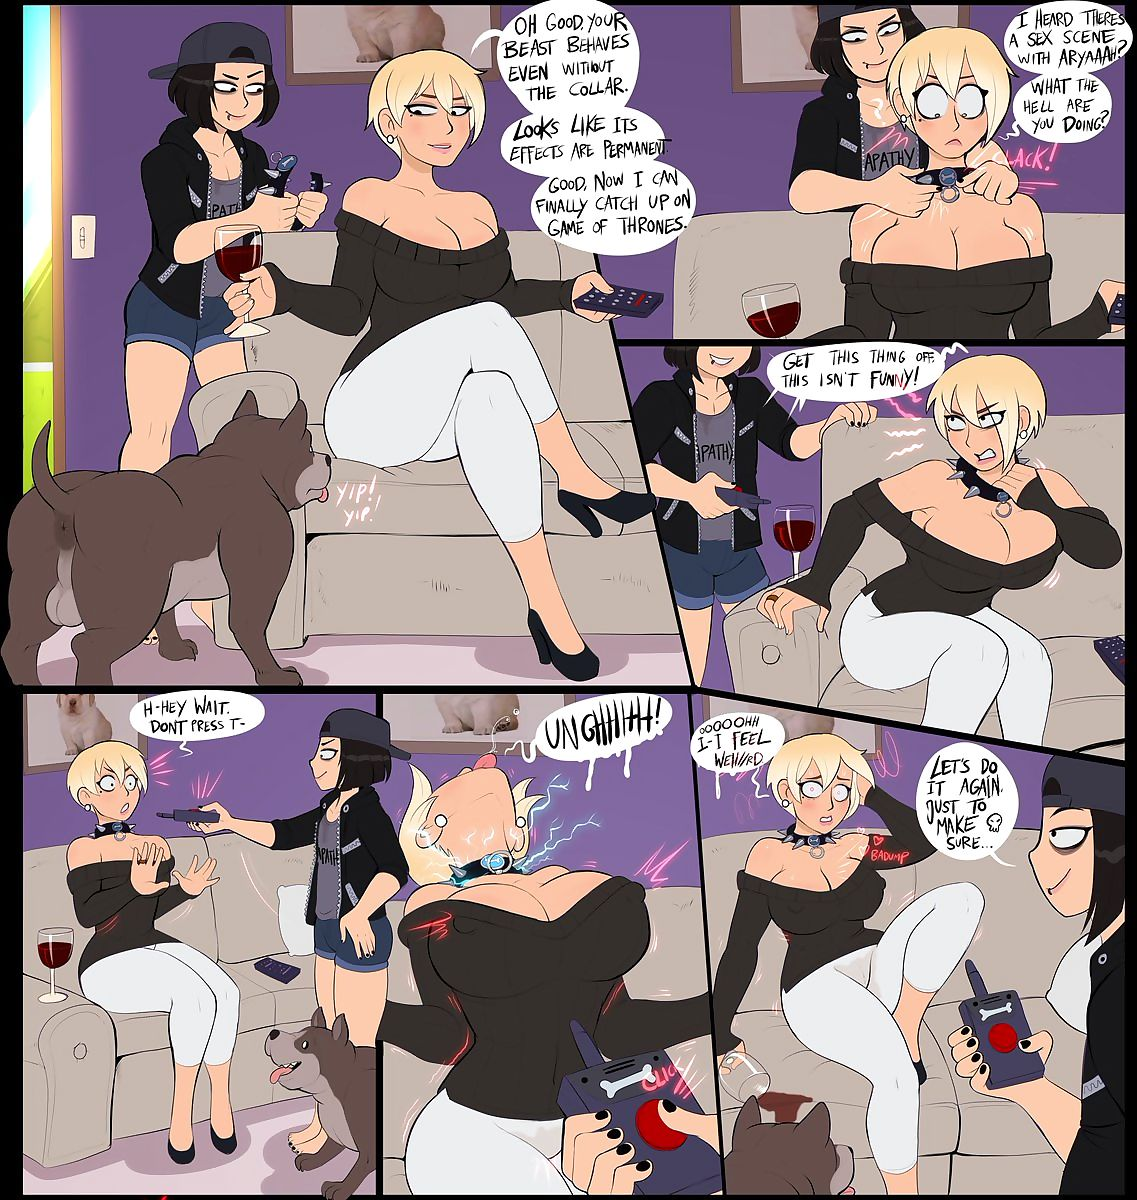 Shadman- Horrify Under legal restraint